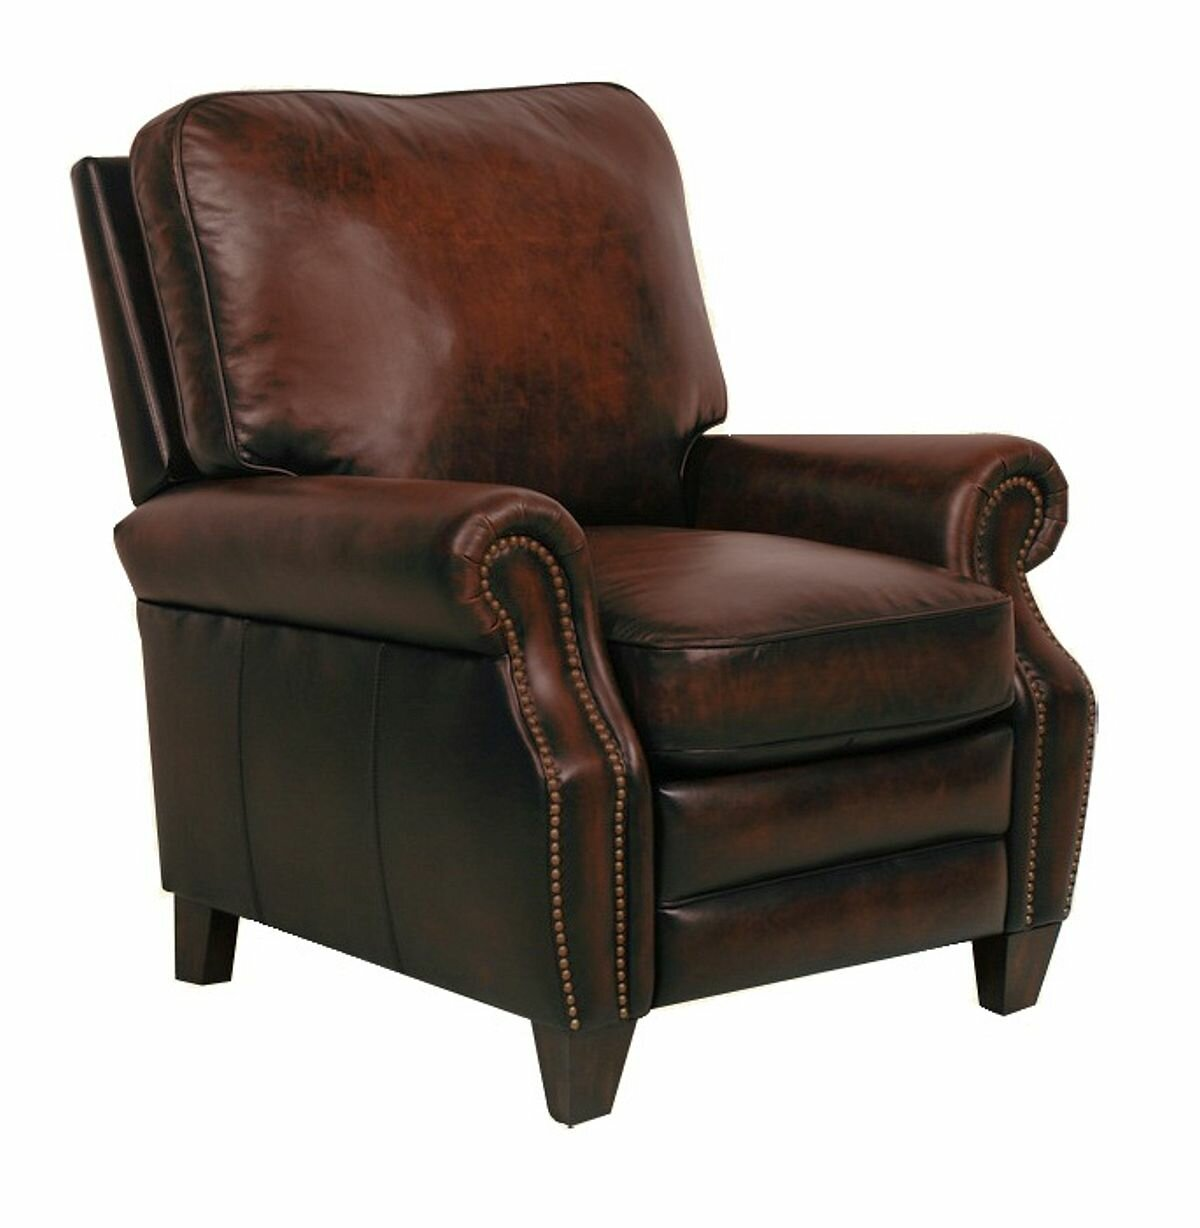 Delicieux Barcalounger Briarwood Leather Manual Recliner U0026 Reviews | Wayfair